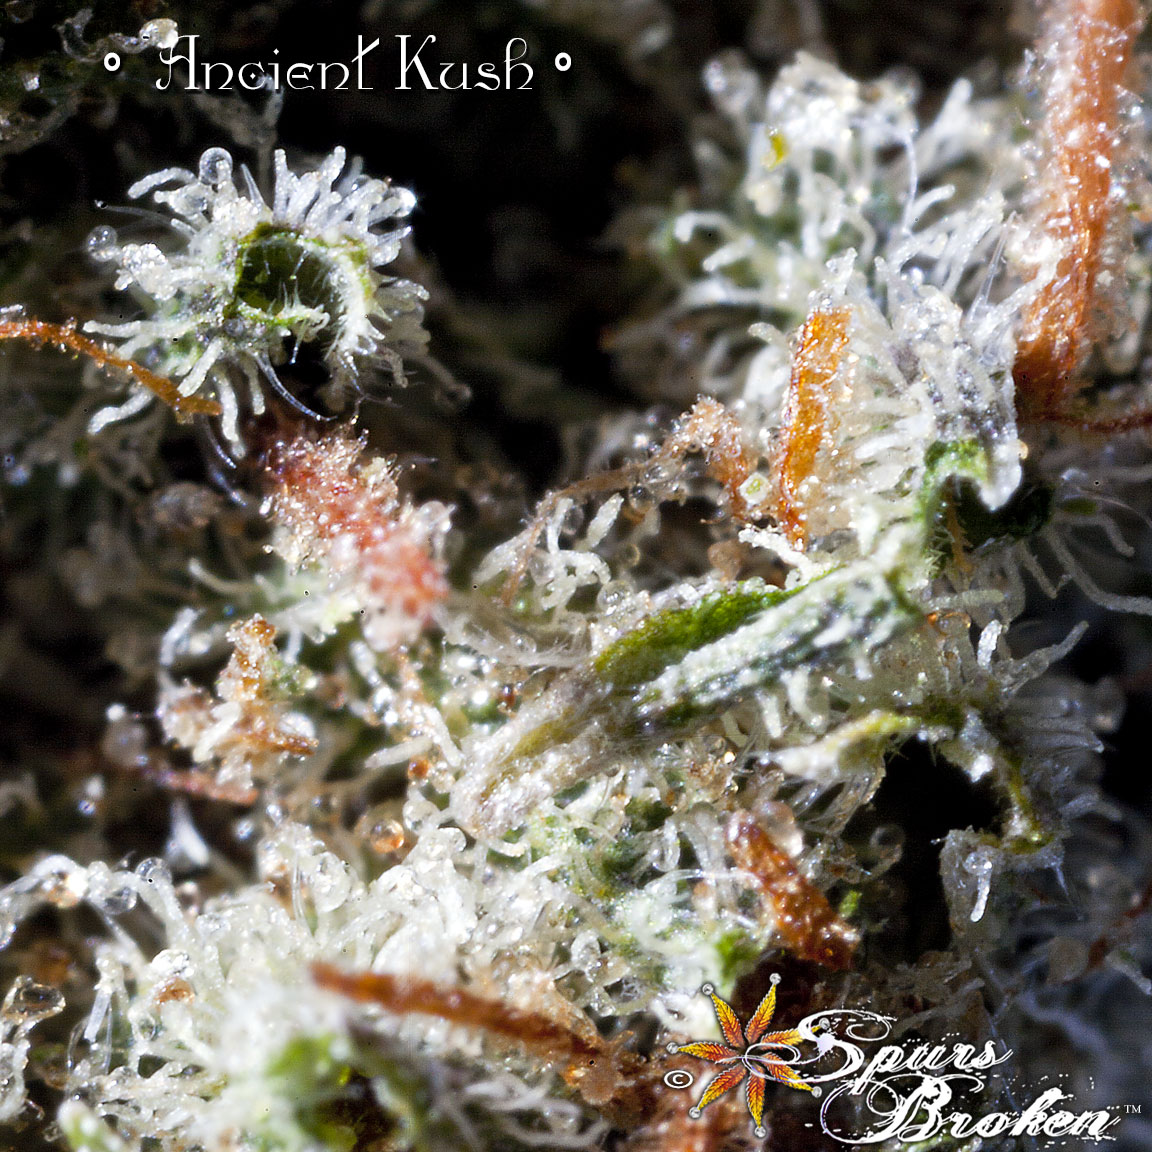 Ancient Kush- Cannabis Macro Photography by Spurs Broken (Robert R. Sanders)